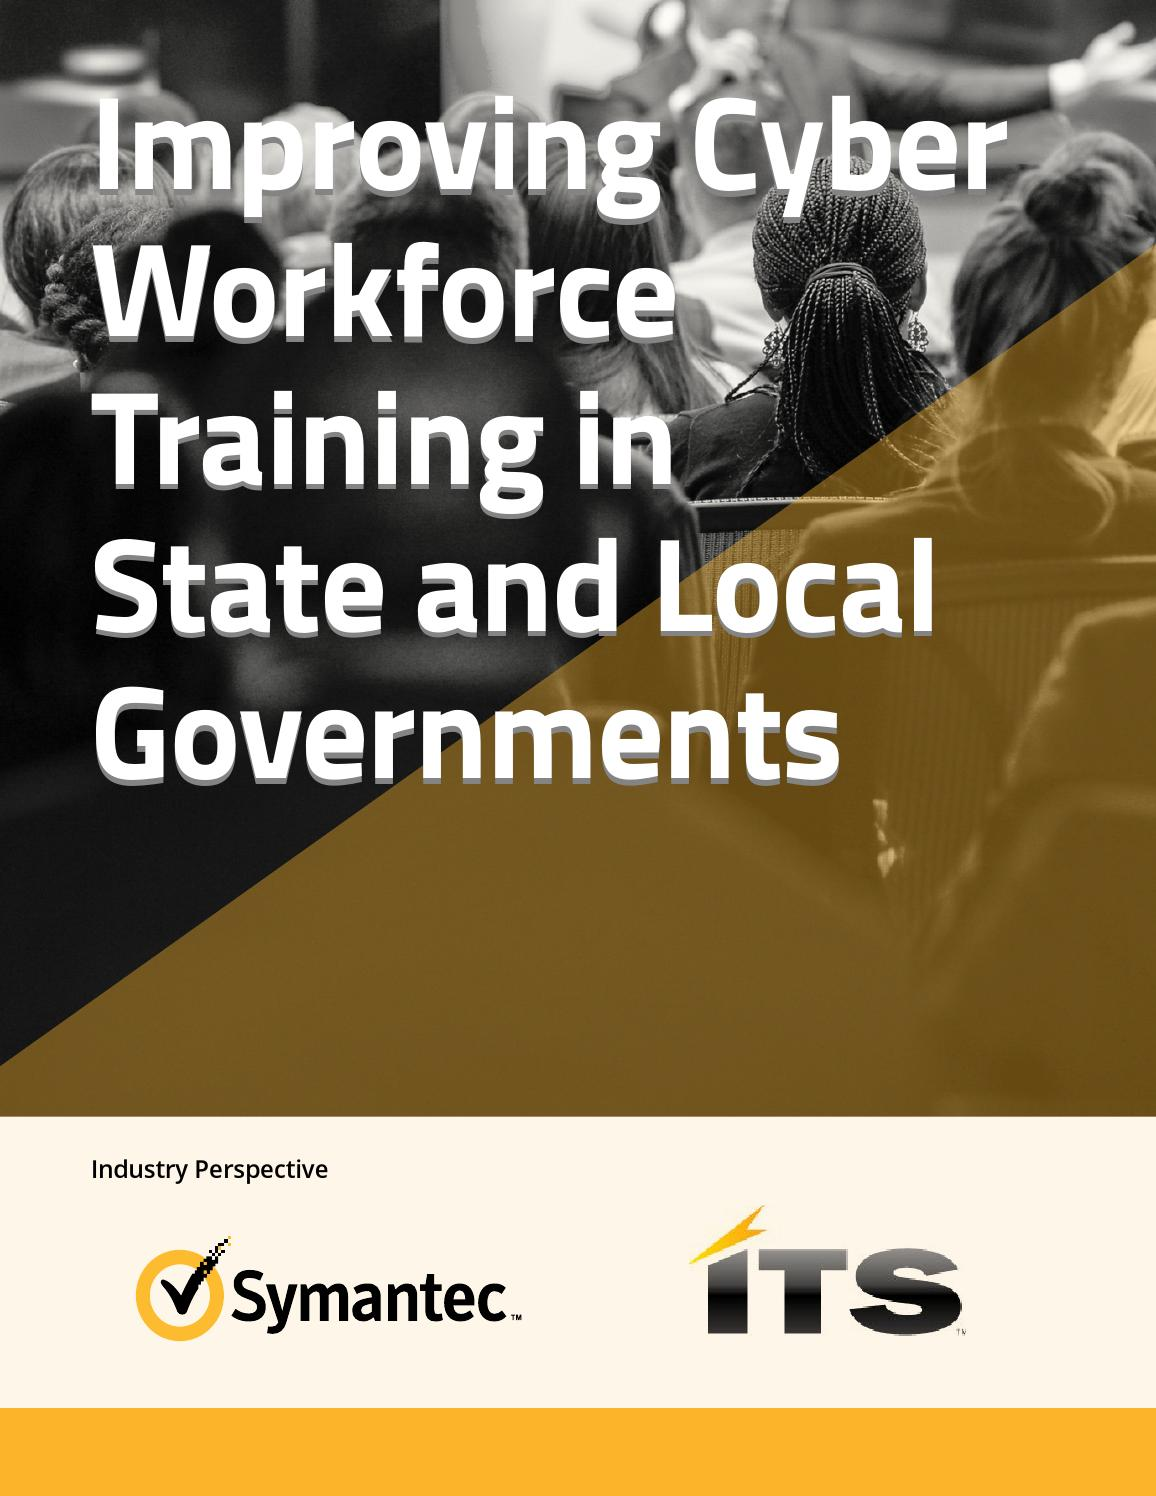 Improving Cyber Workforce Training in State and Local